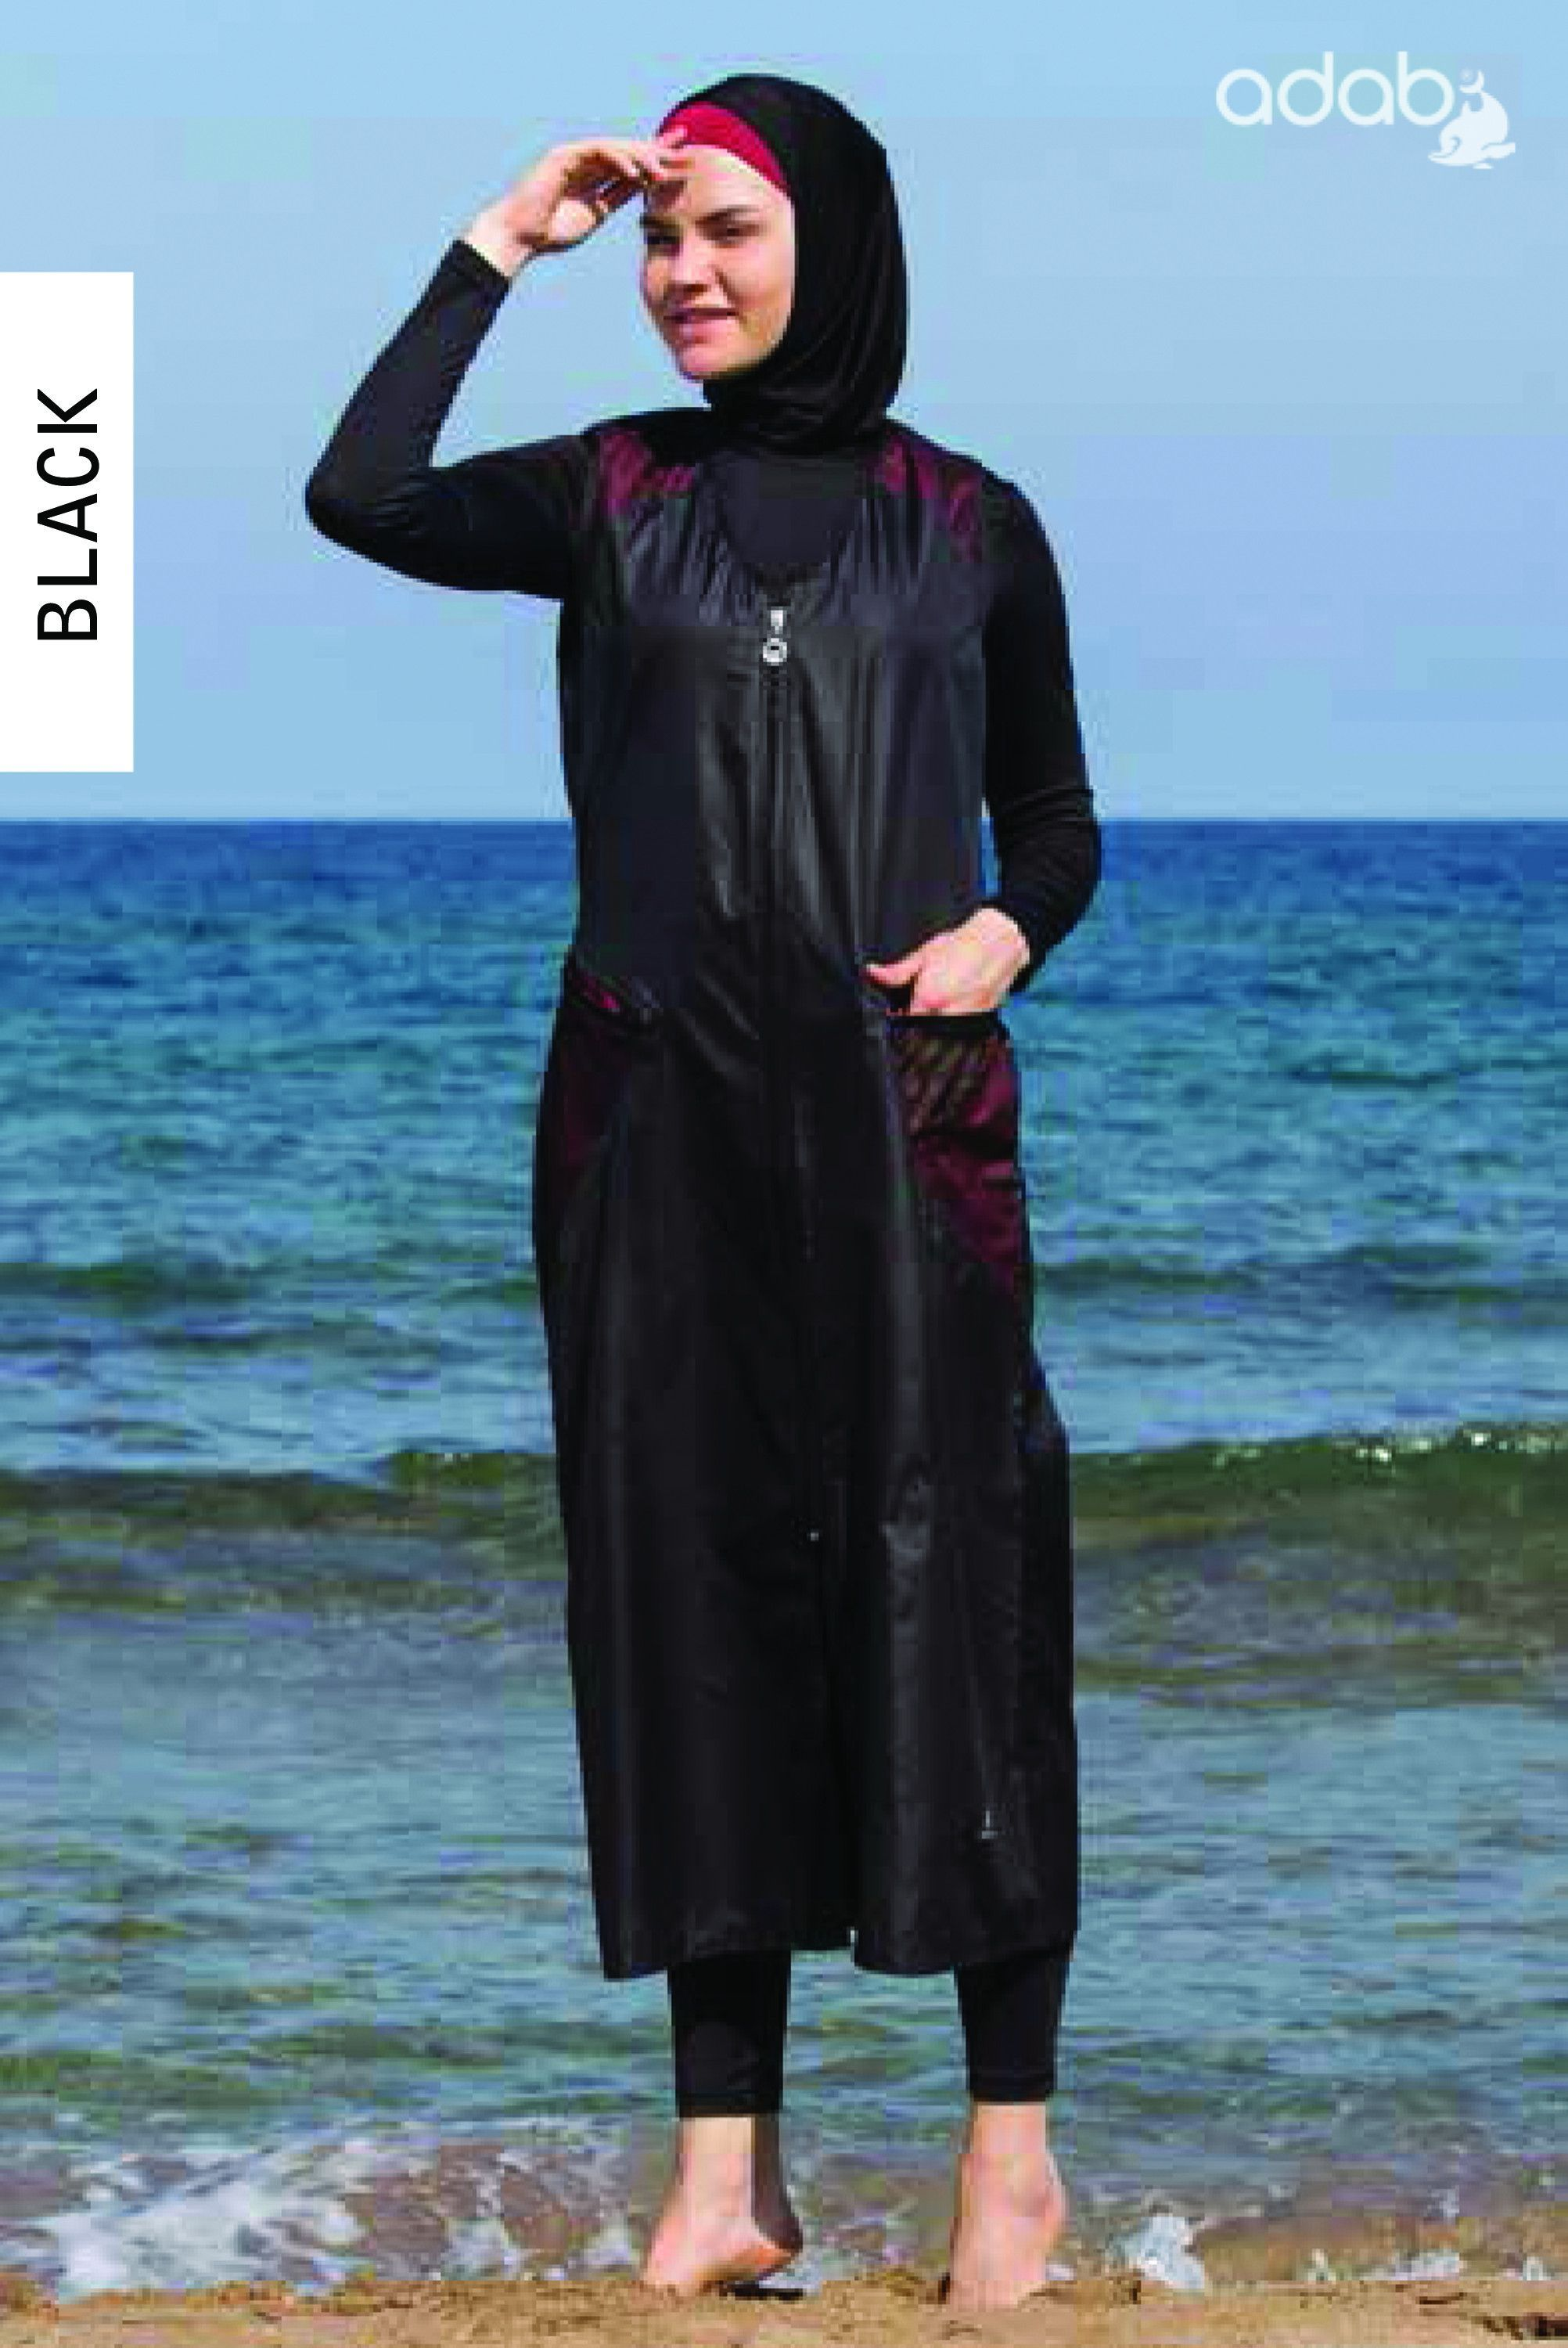 efab686cd4 Introducing 2017 Adabkini Sila, Modest swimwear for women. Adabkini Sila Women's  Swimsuit Full Cover